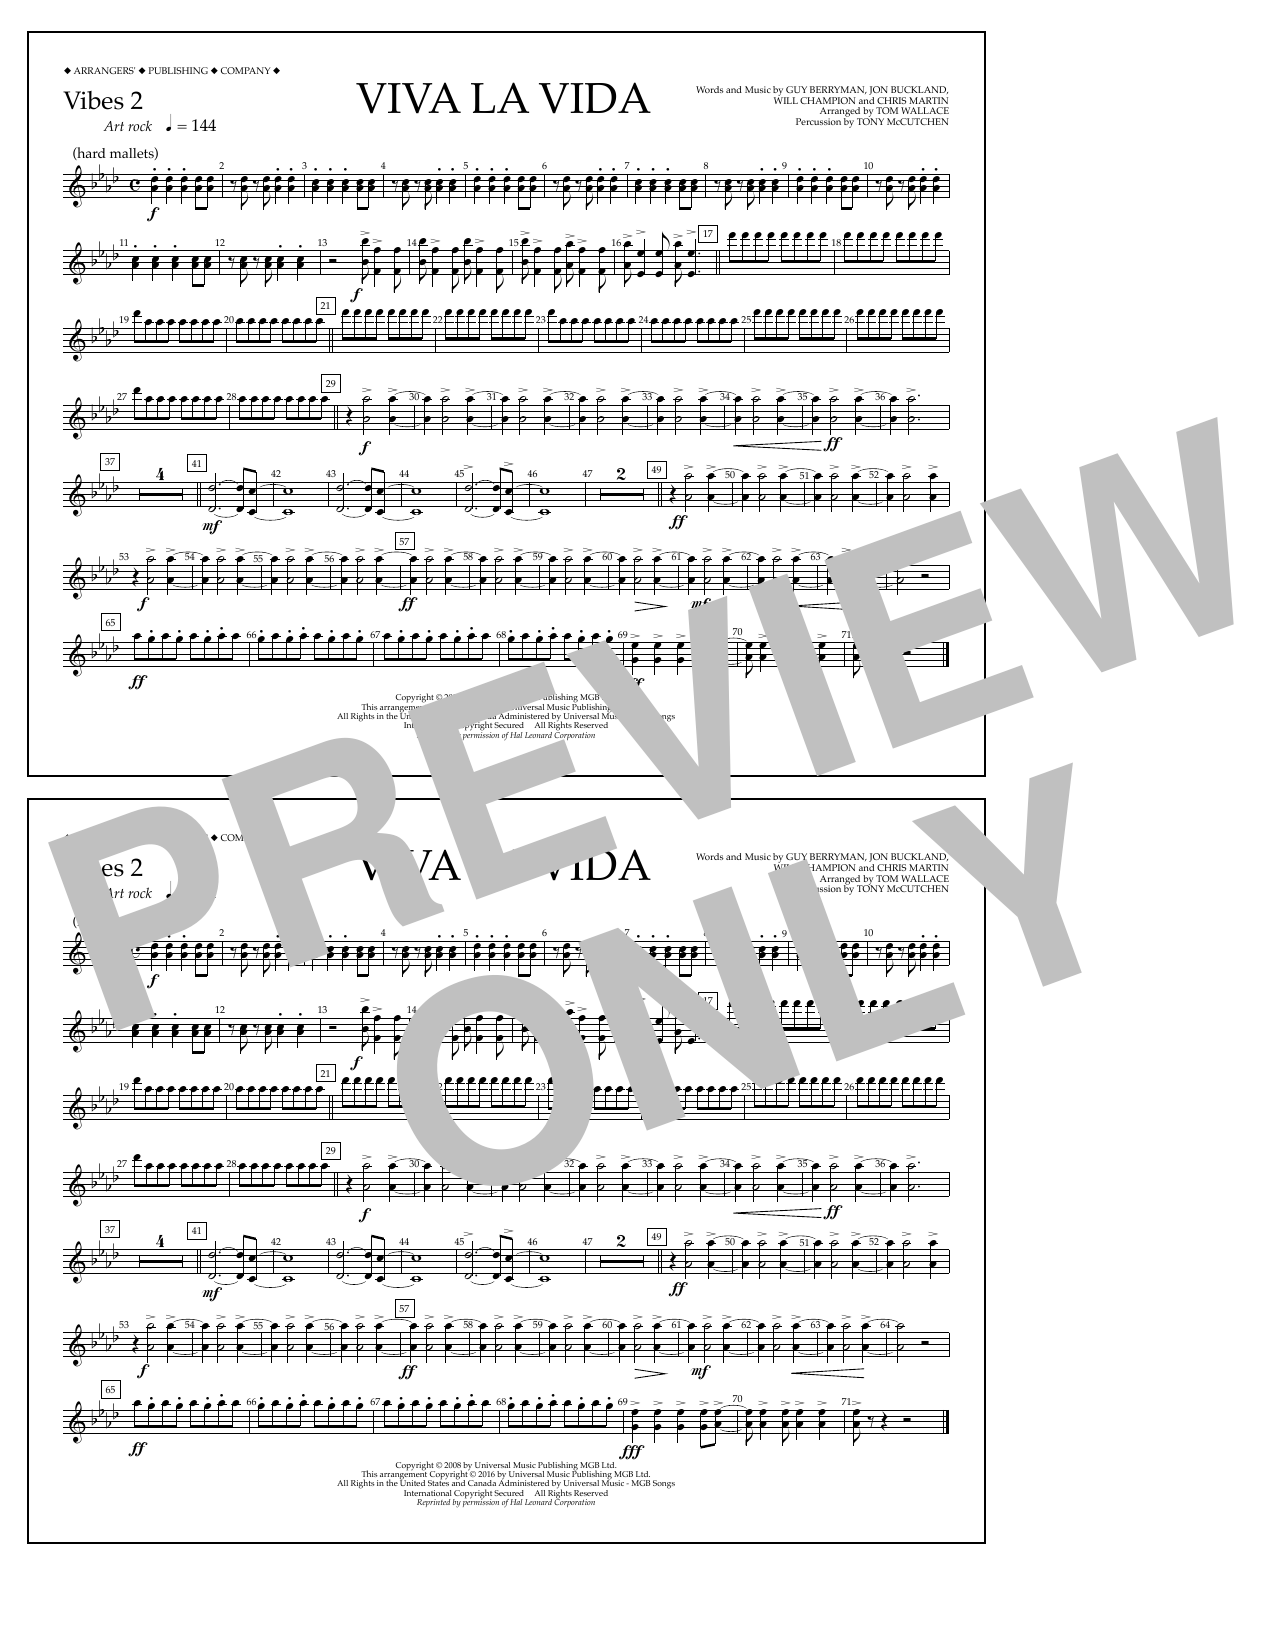 Tom Wallace Viva La Vida - Vibes 2 sheet music notes and chords. Download Printable PDF.